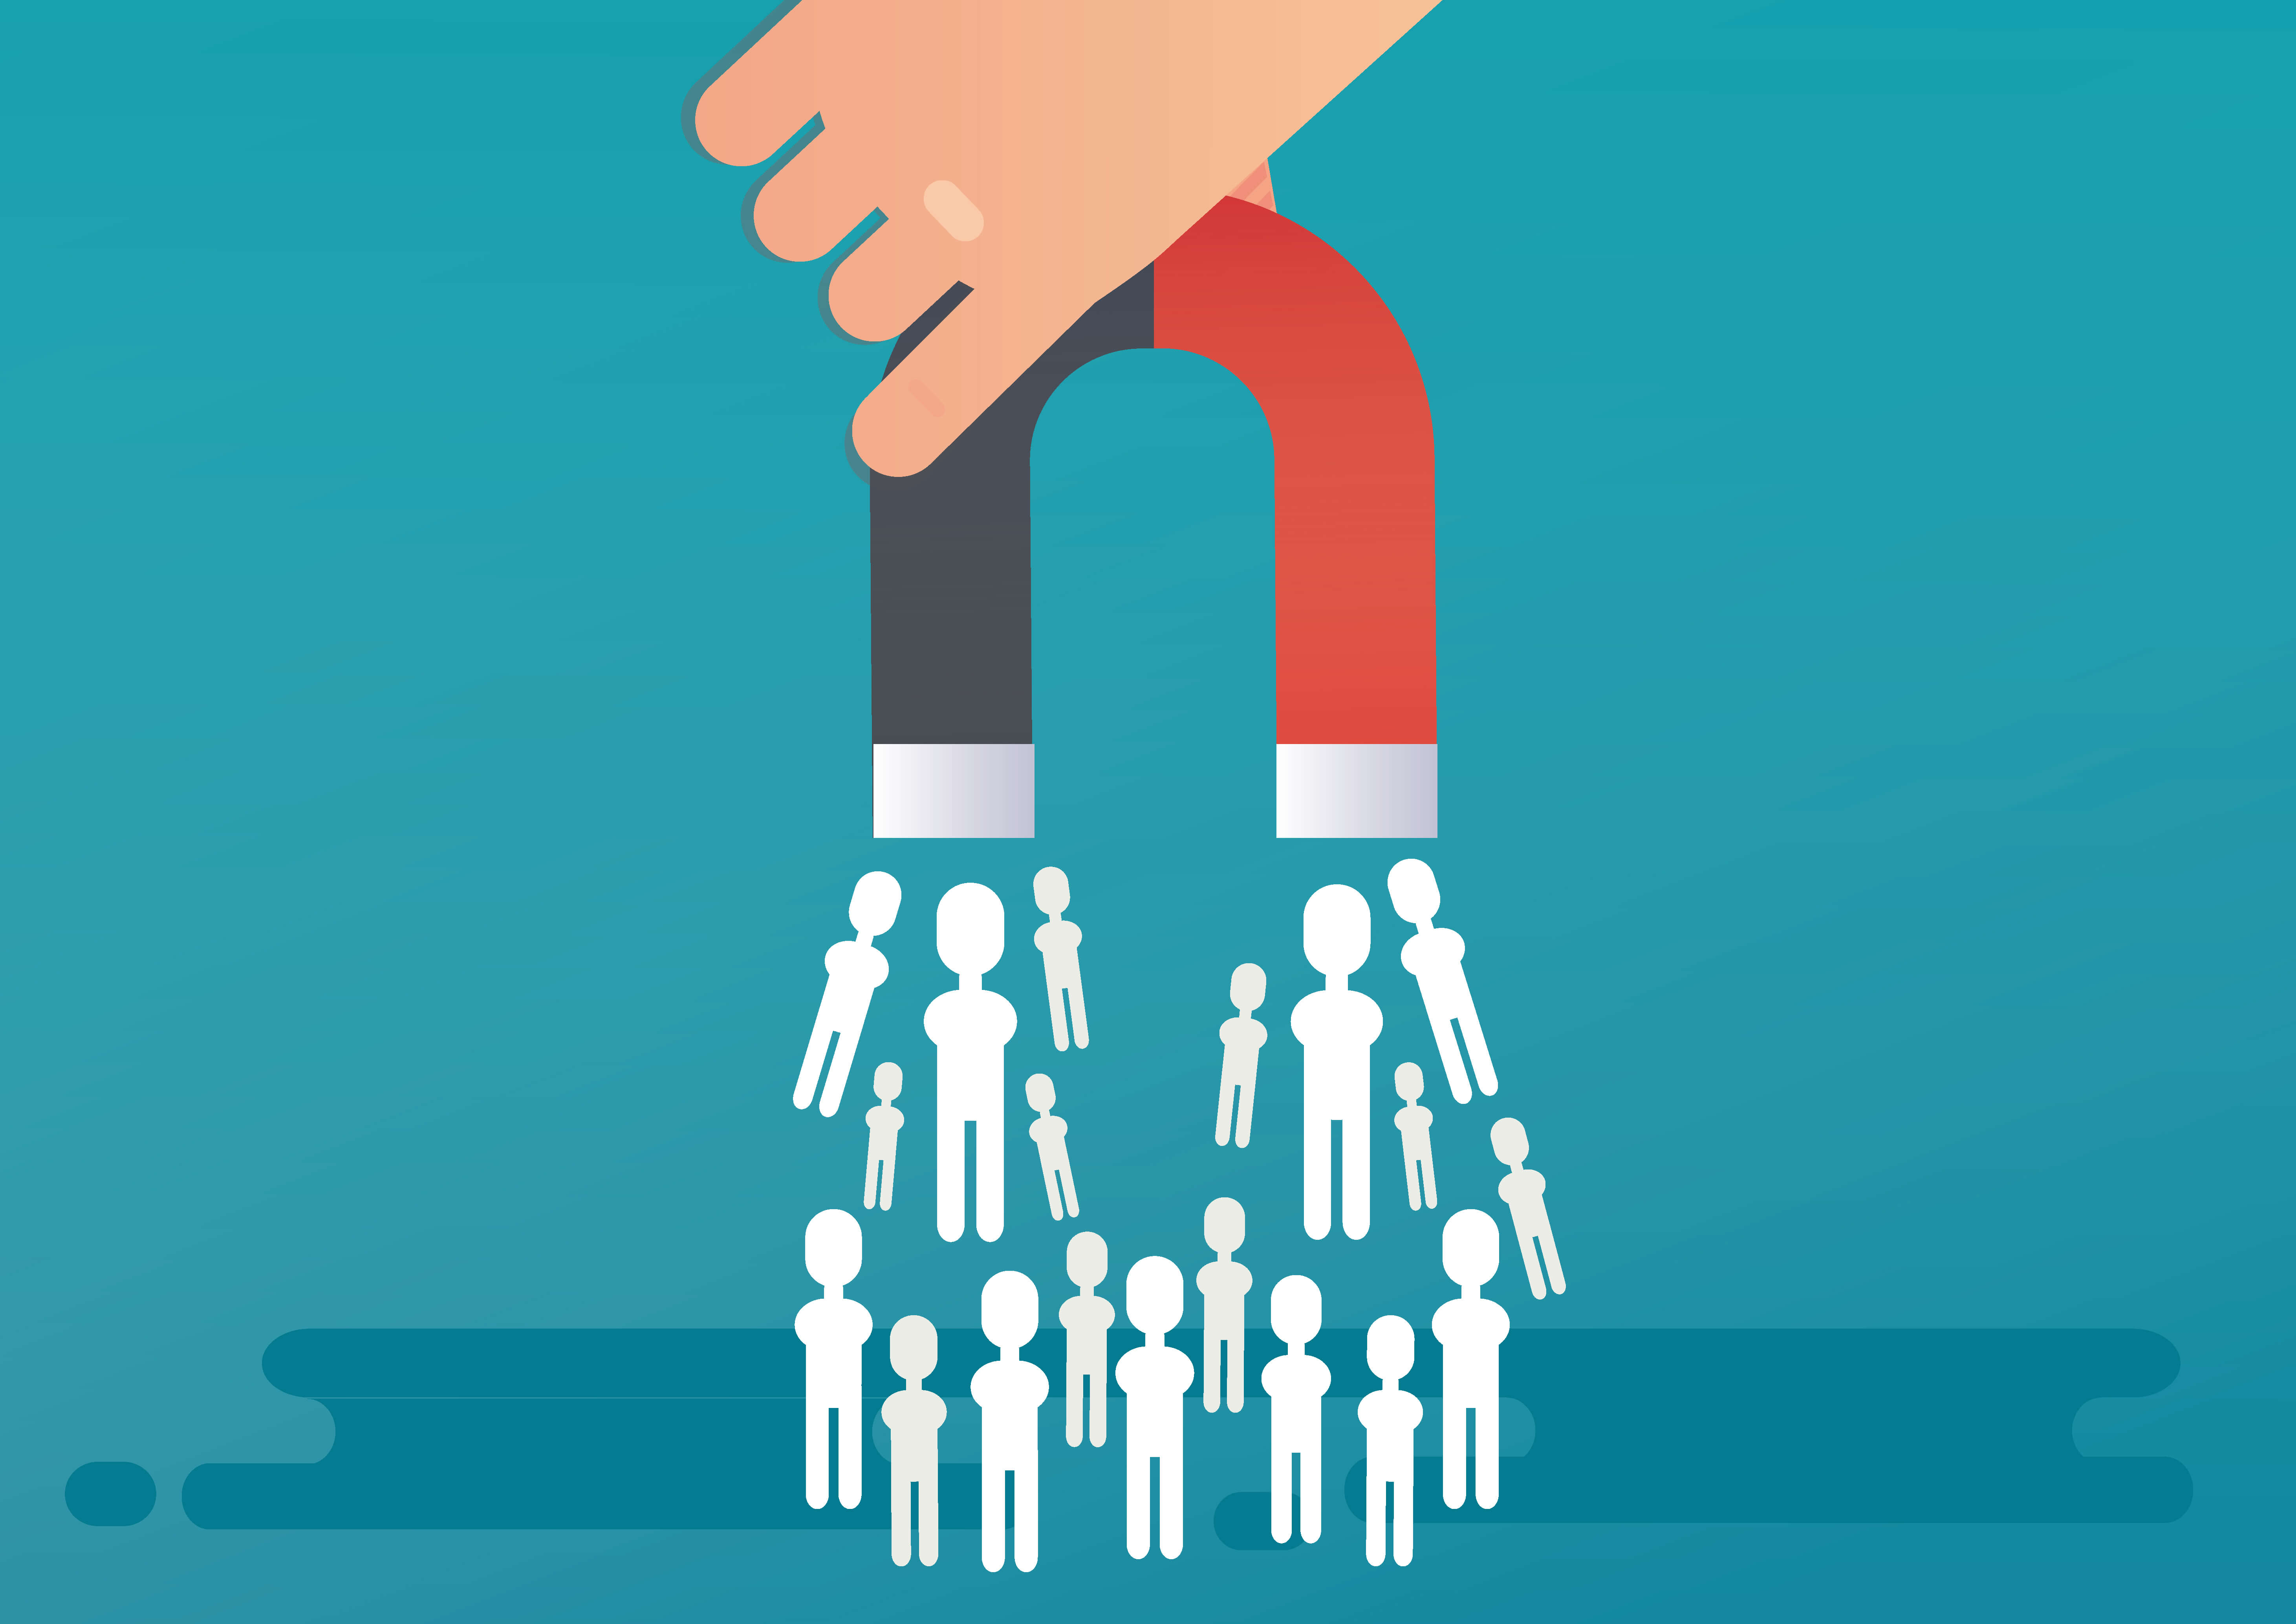 hand holding magnet picking up white figures representing lead generation